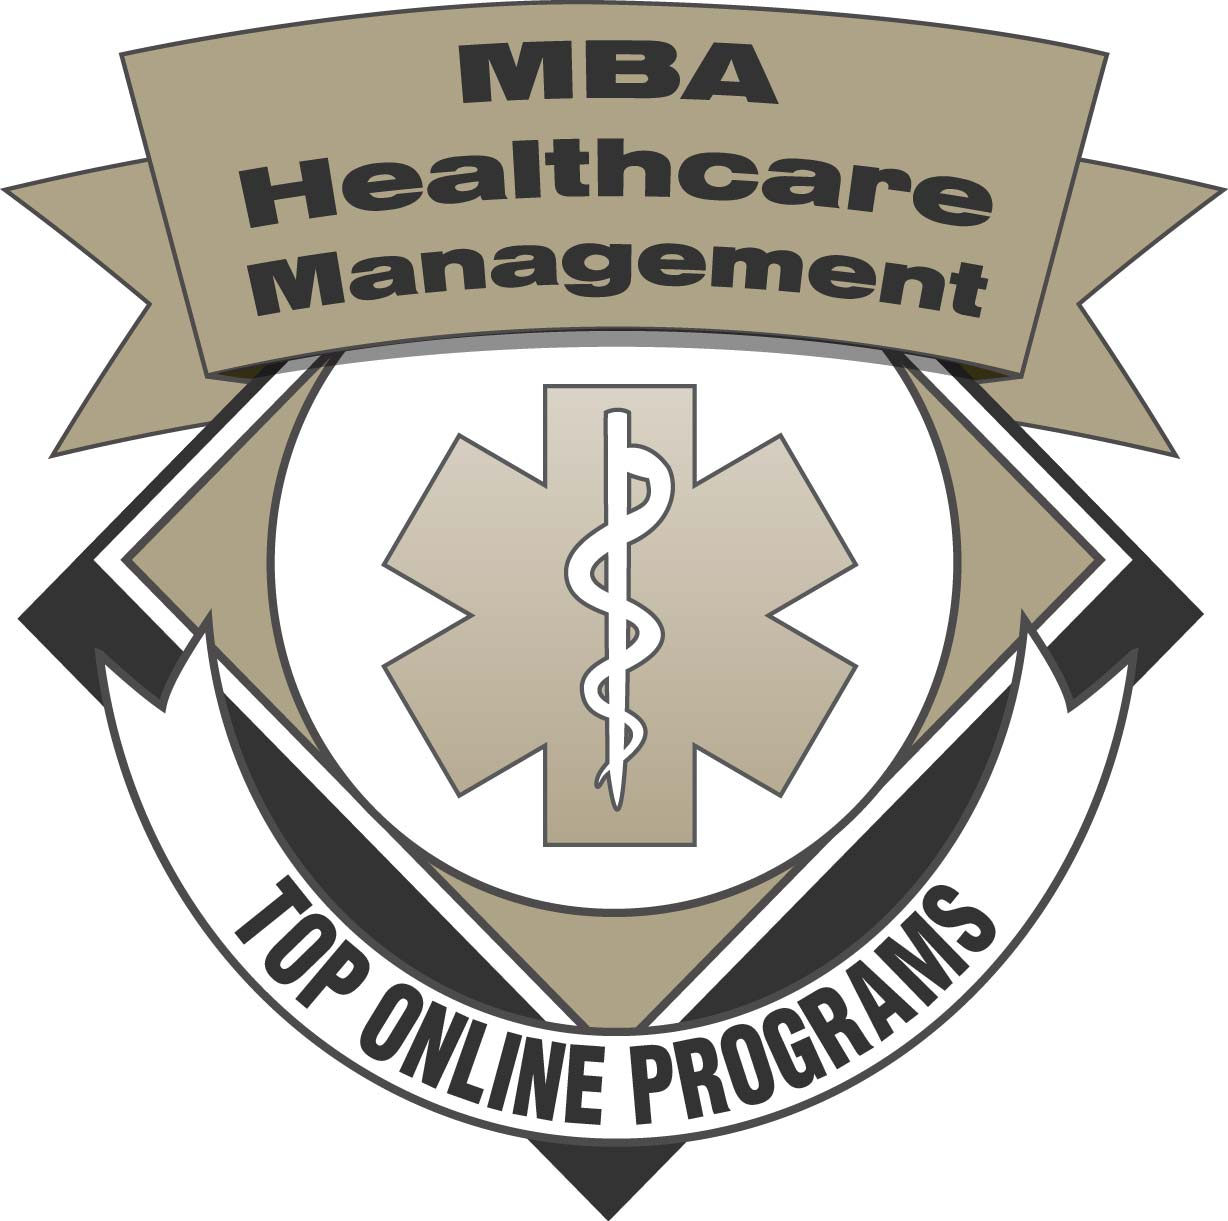 Top 50 Best Online Mba In Healthcare Management Degree. Car And Driver Ford Fusion Testing Dsl Speed. Medical Electronic Billing Software. Windows Home Server Replacement. Car Insurance Compare The Market. 2012 Lexus Ls 460 Review Locksmith Tamarac Fl. Sound Engineering Salary Whats An Ira Account. Online Excel Vba Training E Renters Insurance. Sustainability In Business Animated Star Gif